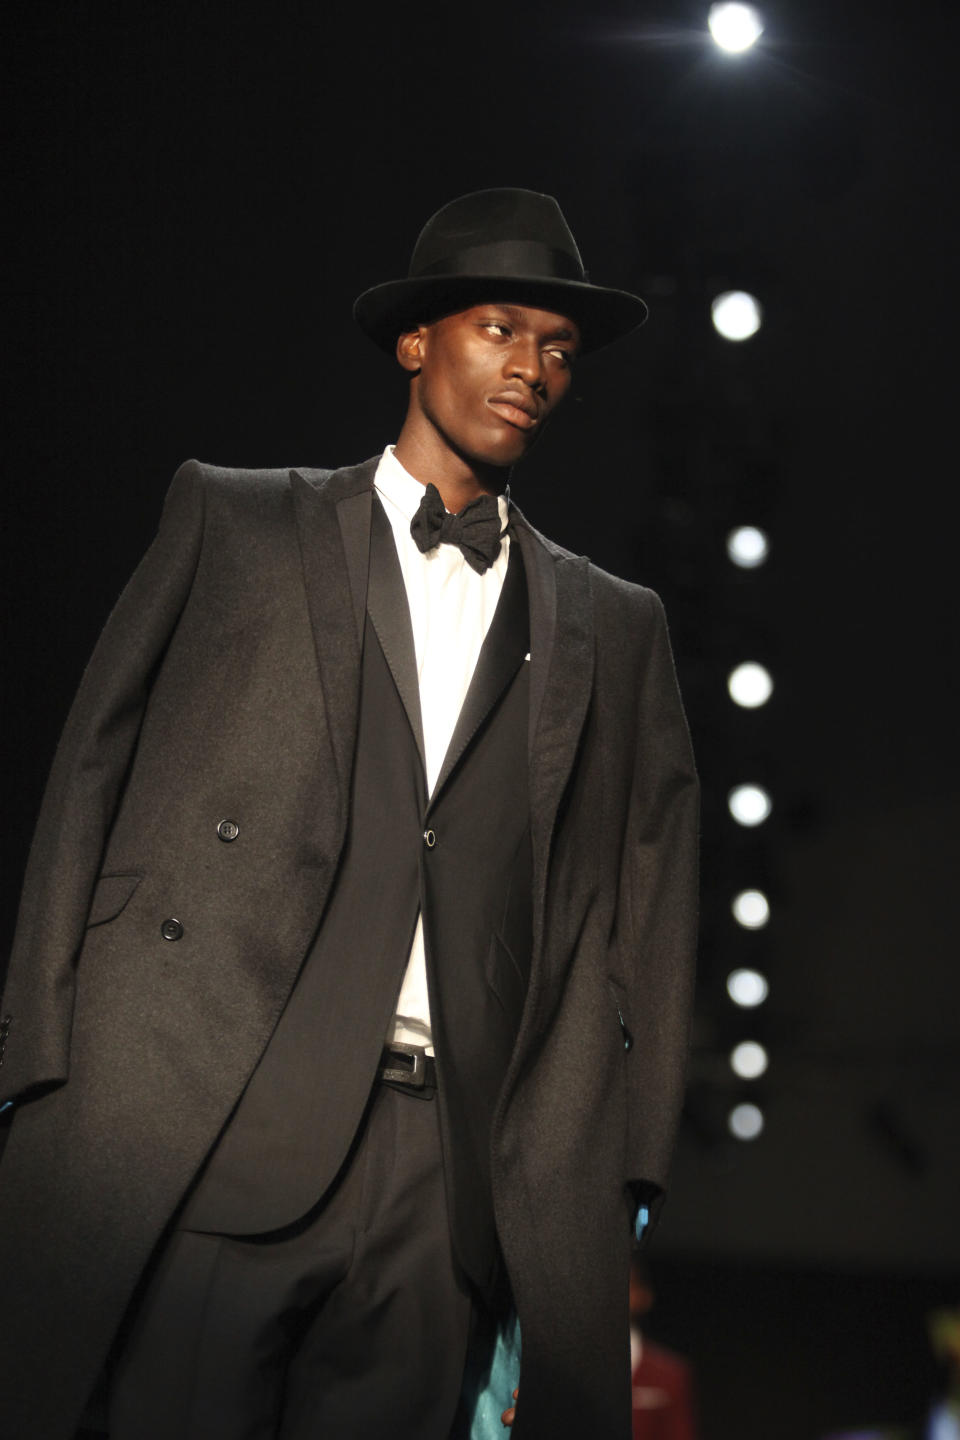 A model displays an outfit by designer Ozwald Boateng of the United Kingdom at the ARISE Fashion Week event in Lagos, Nigeria on Sunday, March 11, 2012. (AP Photos/Sunday Alamba)